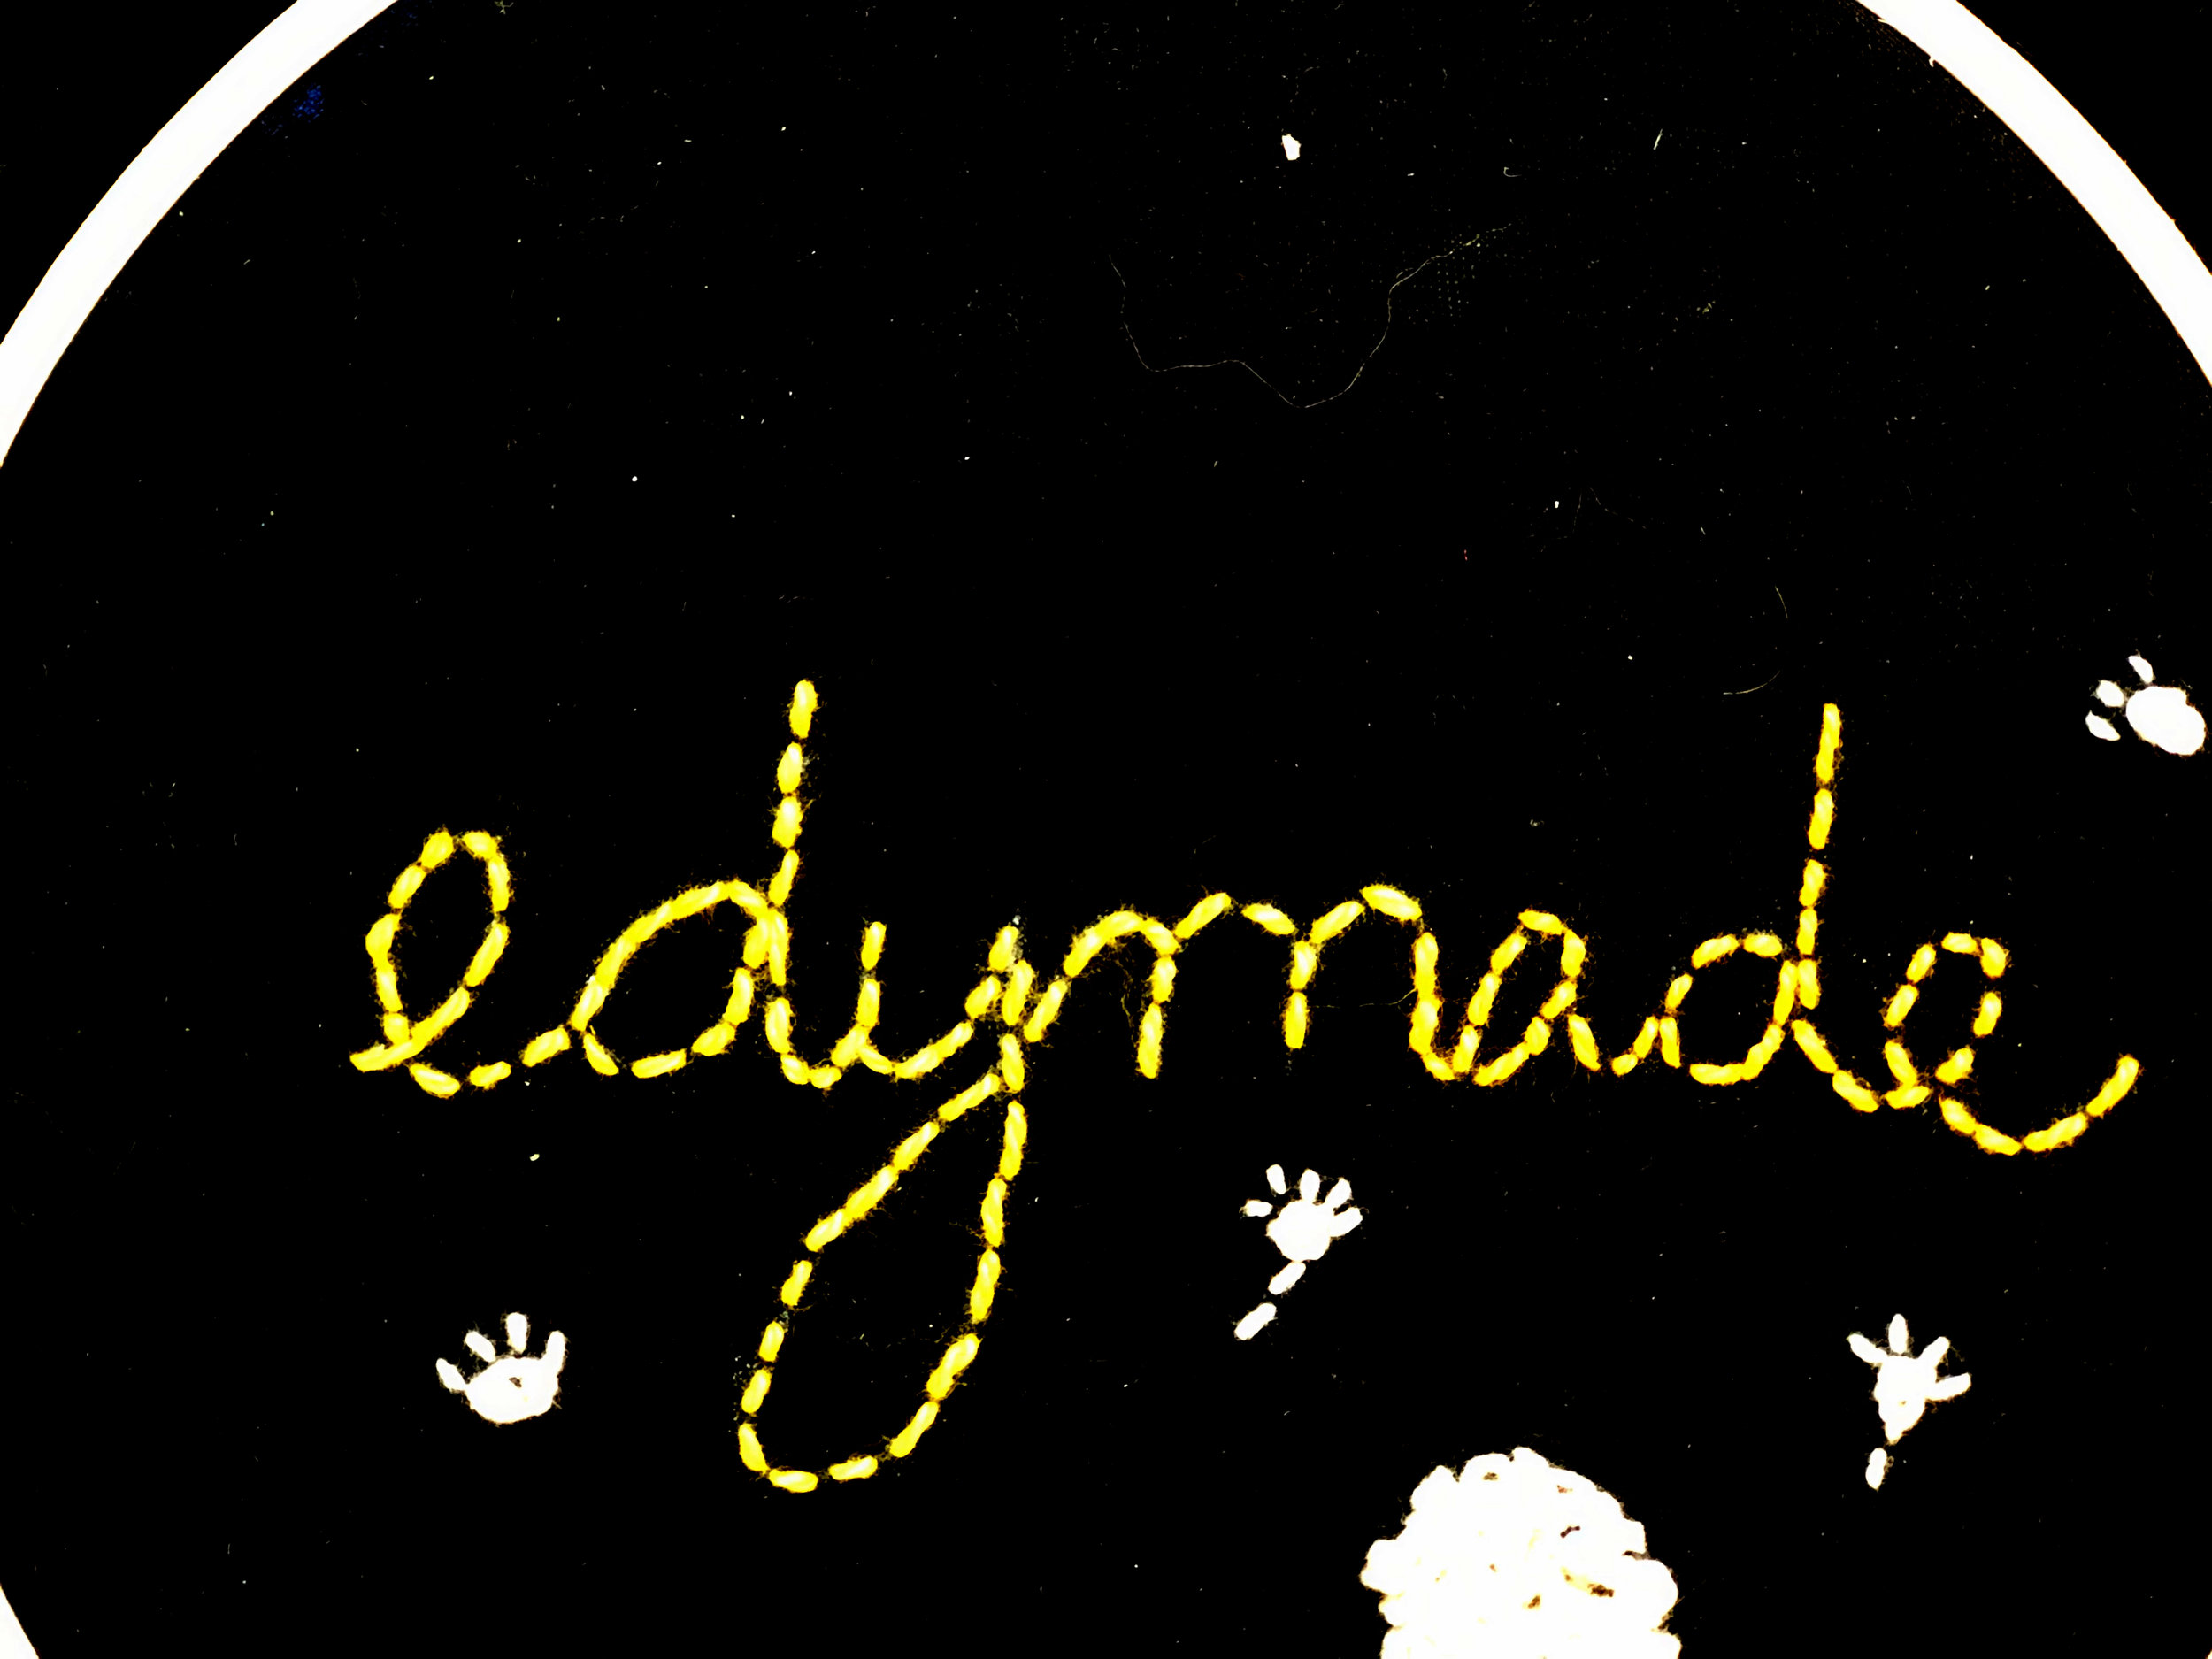 edymade backstitch.jpg